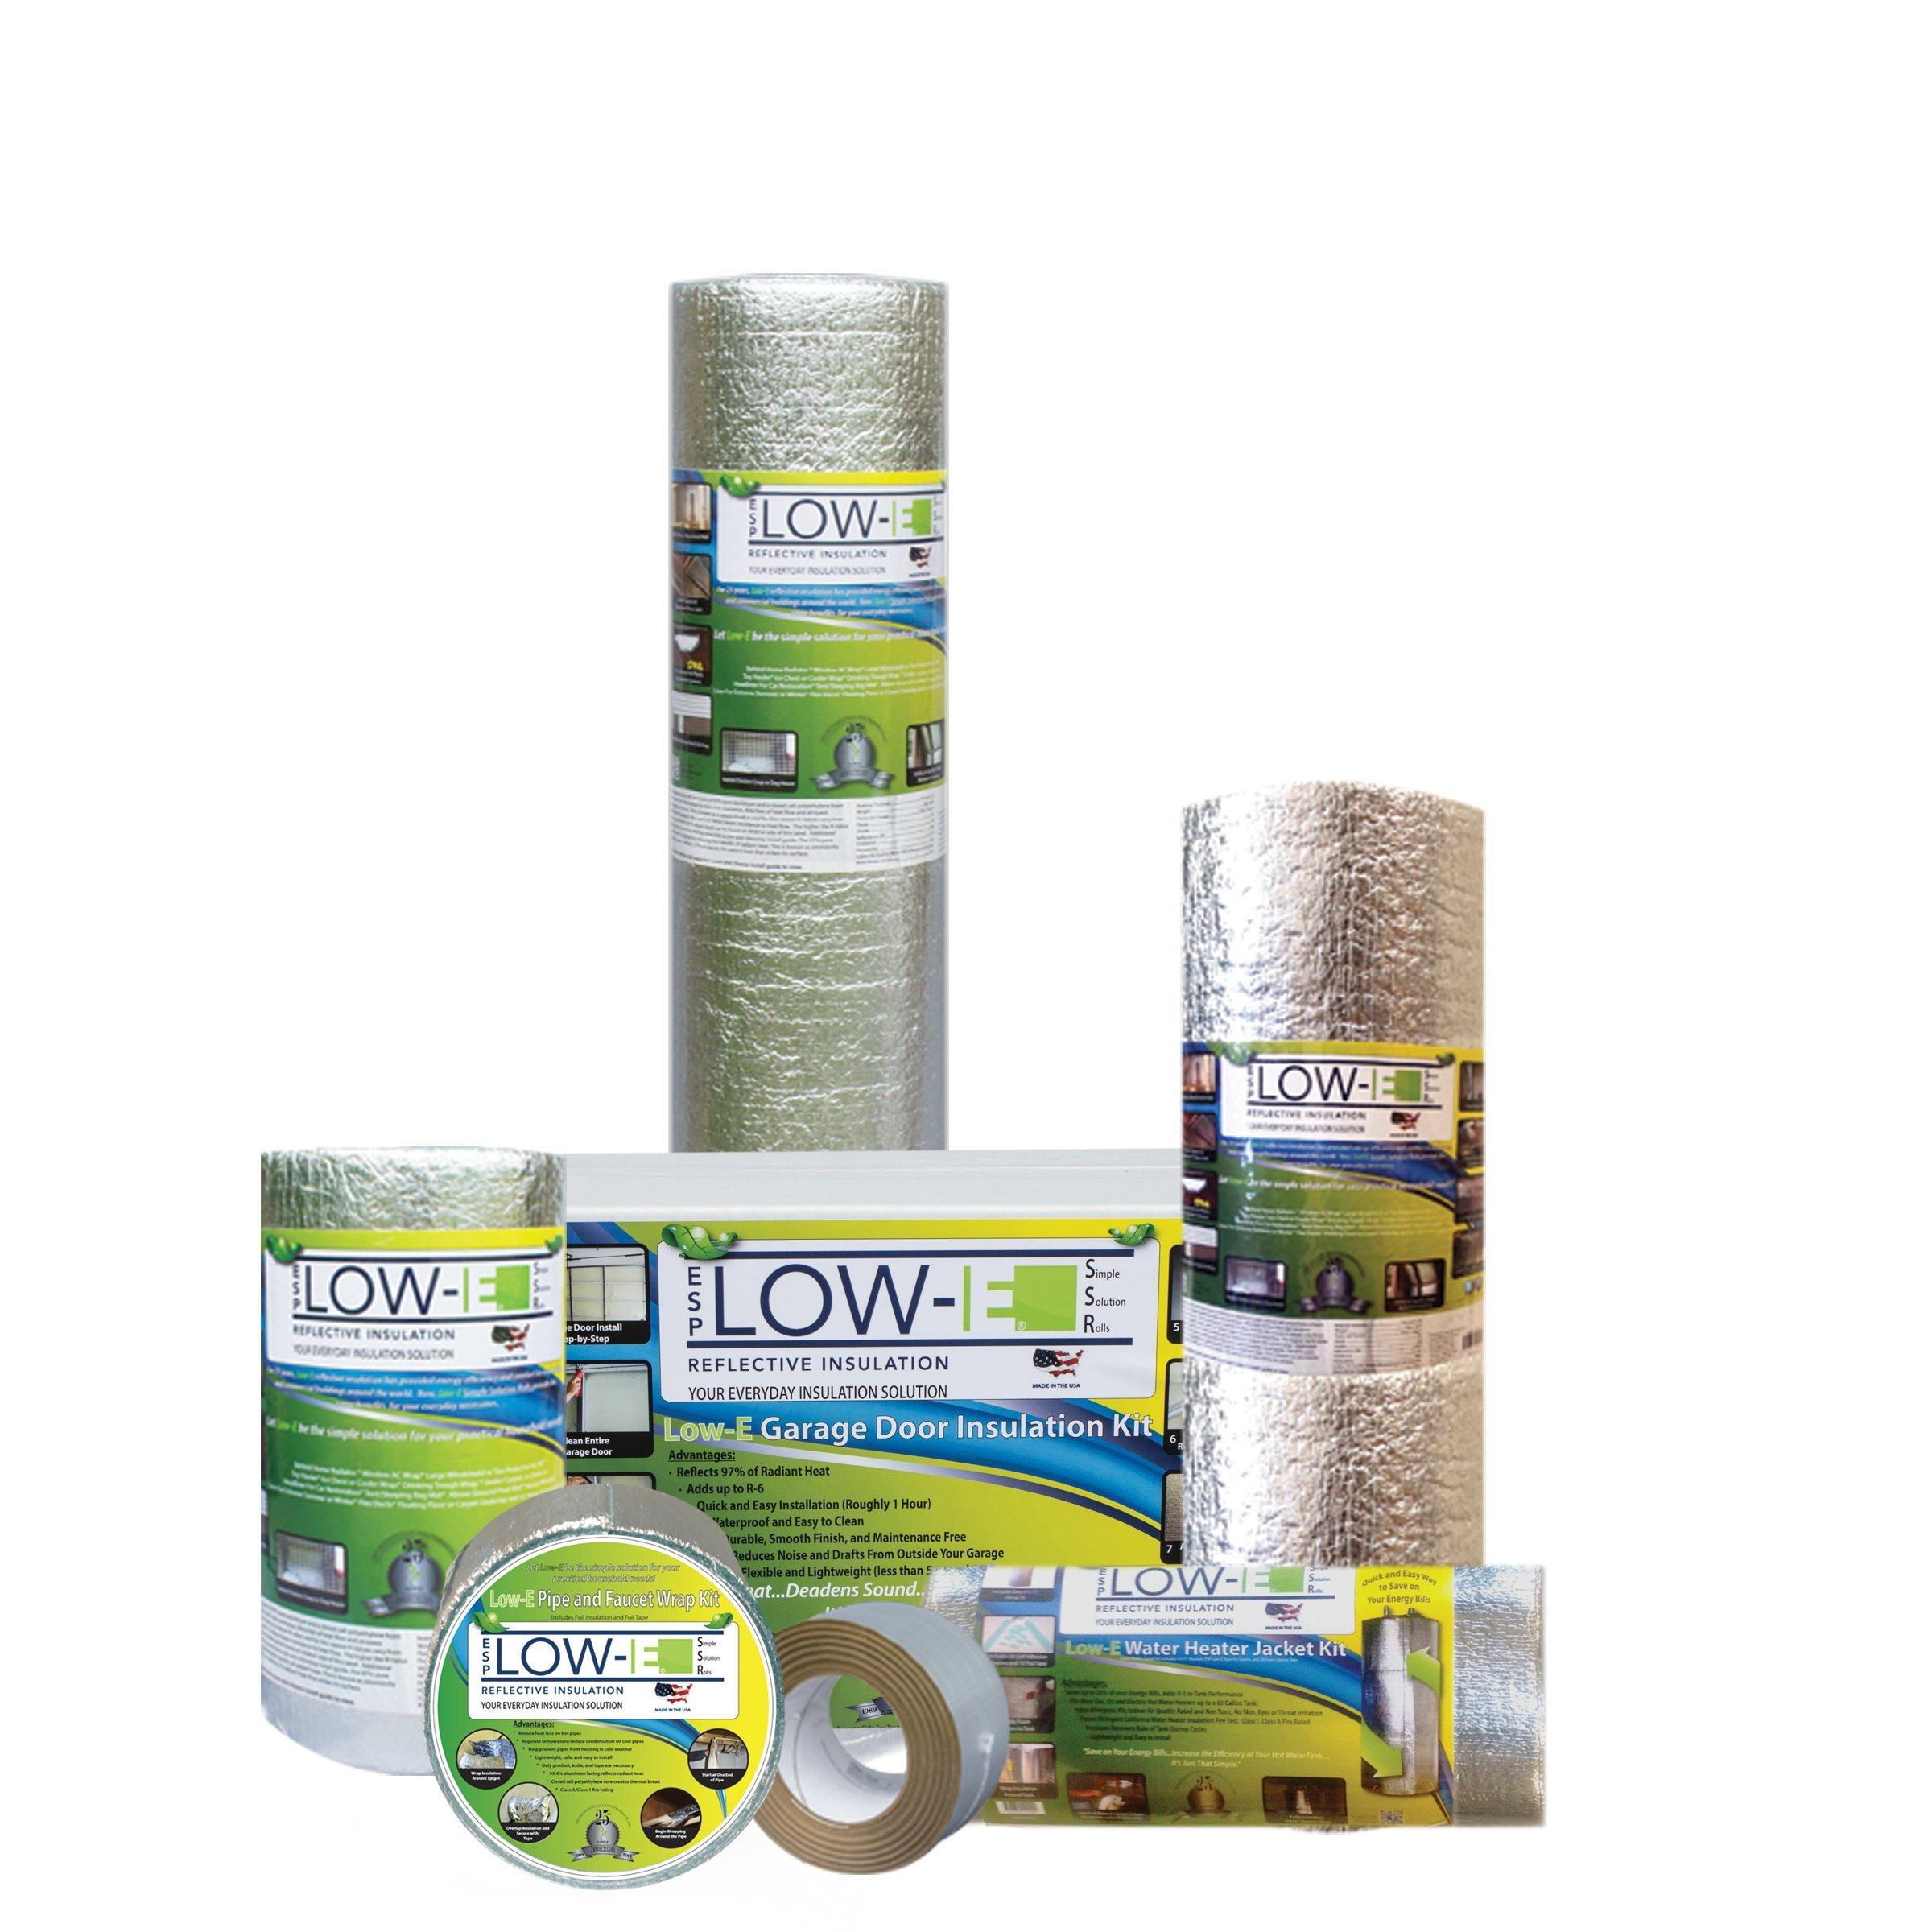 2 PACK Wholesale Lot: ESP Low-E® SSR Reflective Foam Core Insulation Kit: 2 Rolls (Size 48''x50') Includes 50' Foil Tape per roll, Knife & Squeegee. Multipurpose Home Insulation For Your Building Project or Just Every Day Household Needs.